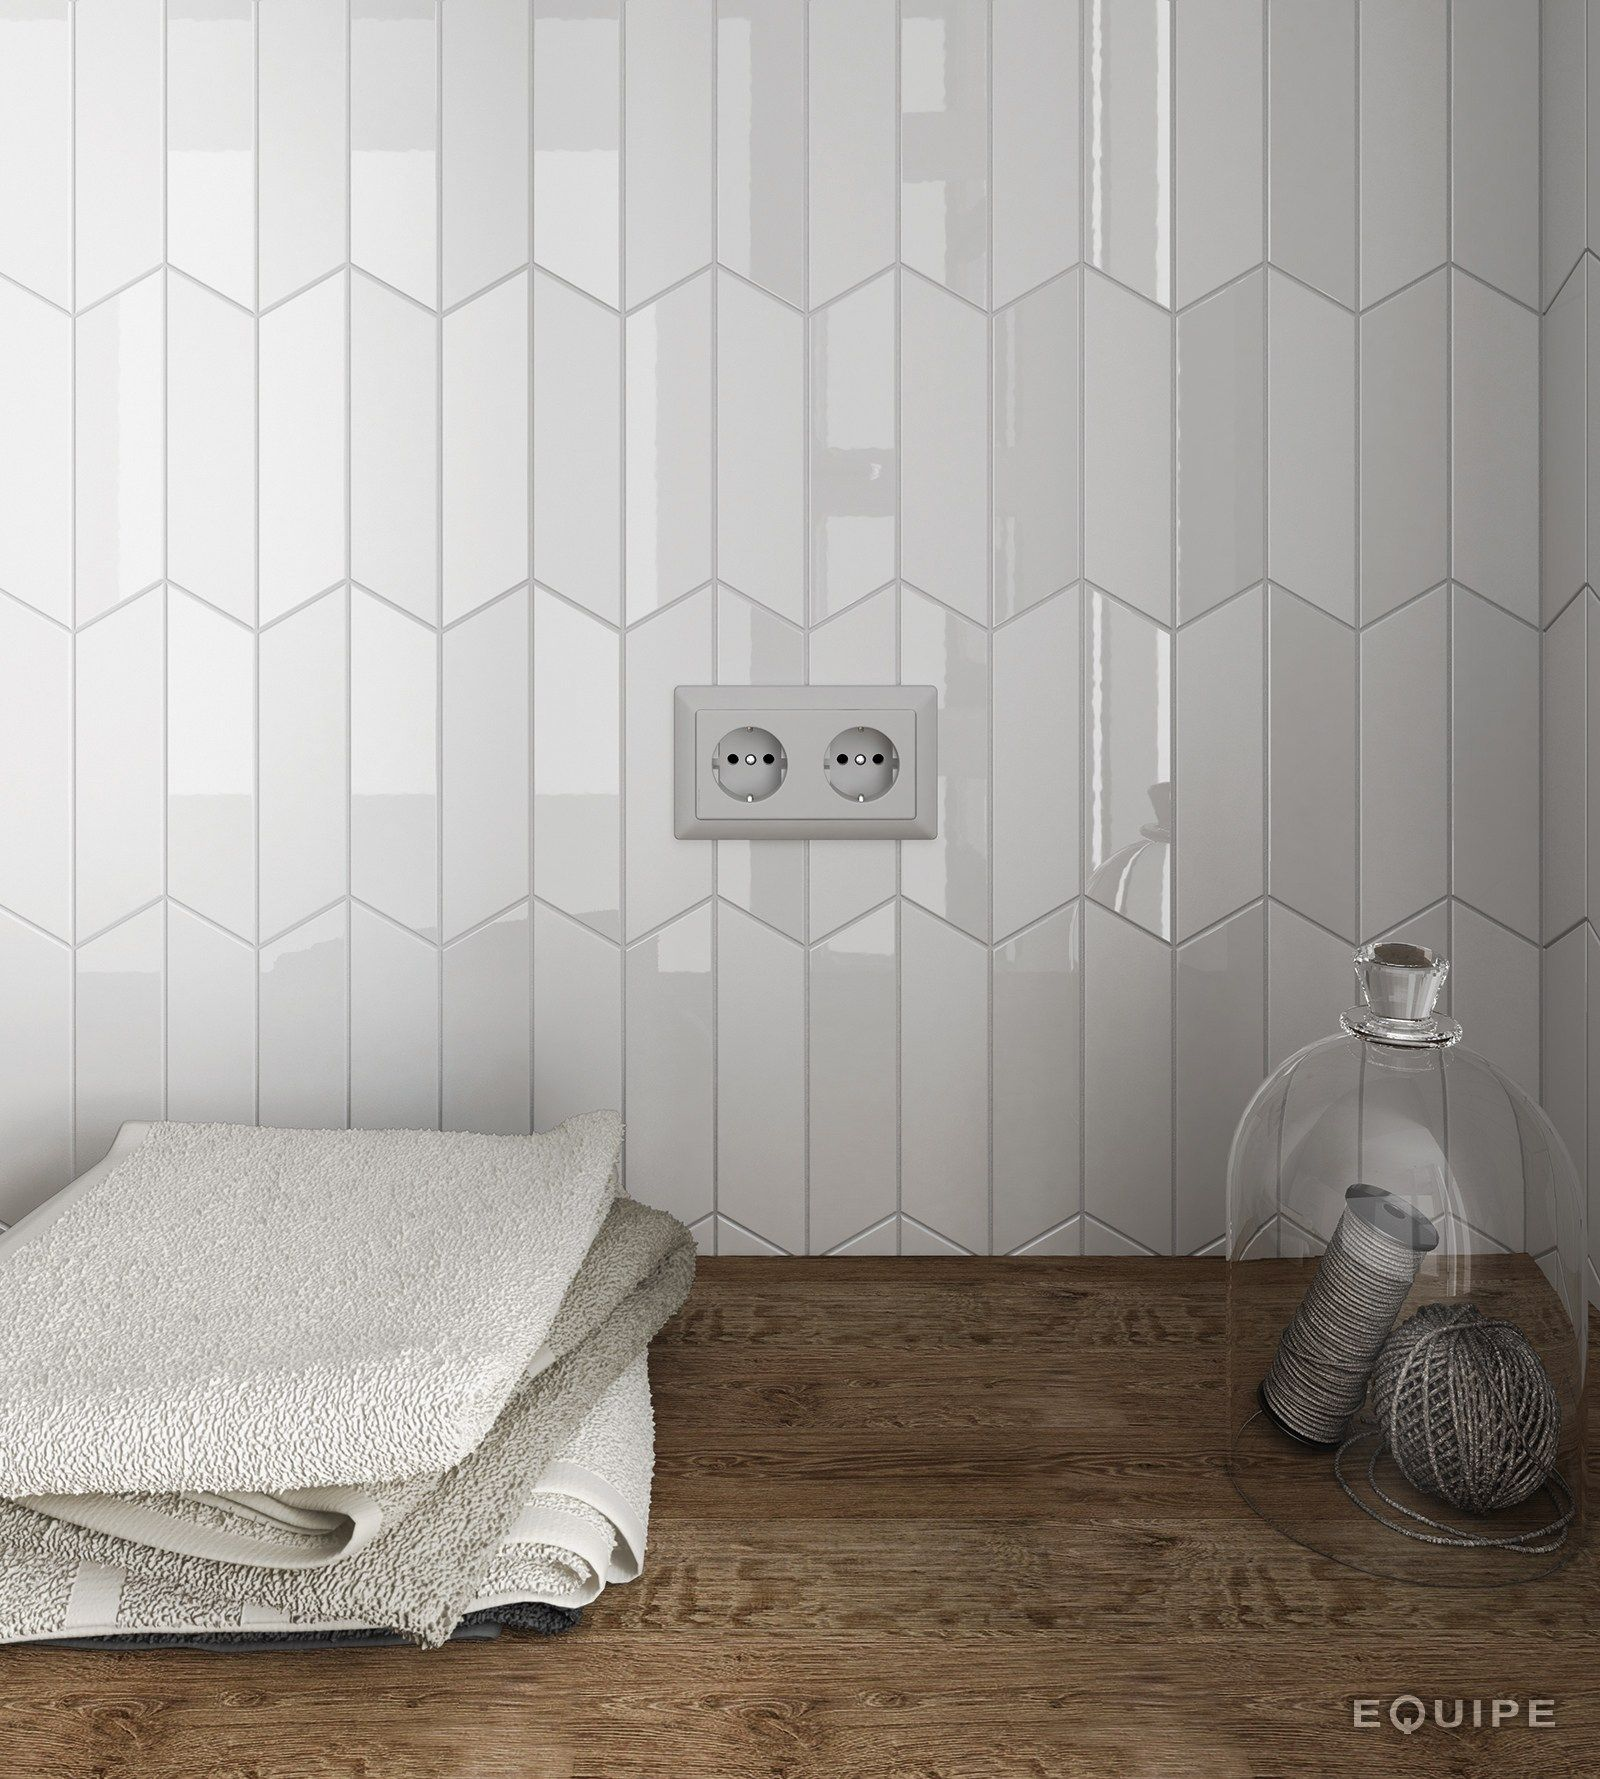 Chevron Wall Wall Tiles By Equipe Ceramicas Room Wall Tiles Bathroom Wall Tile Kitchen Wall Tiles Modern